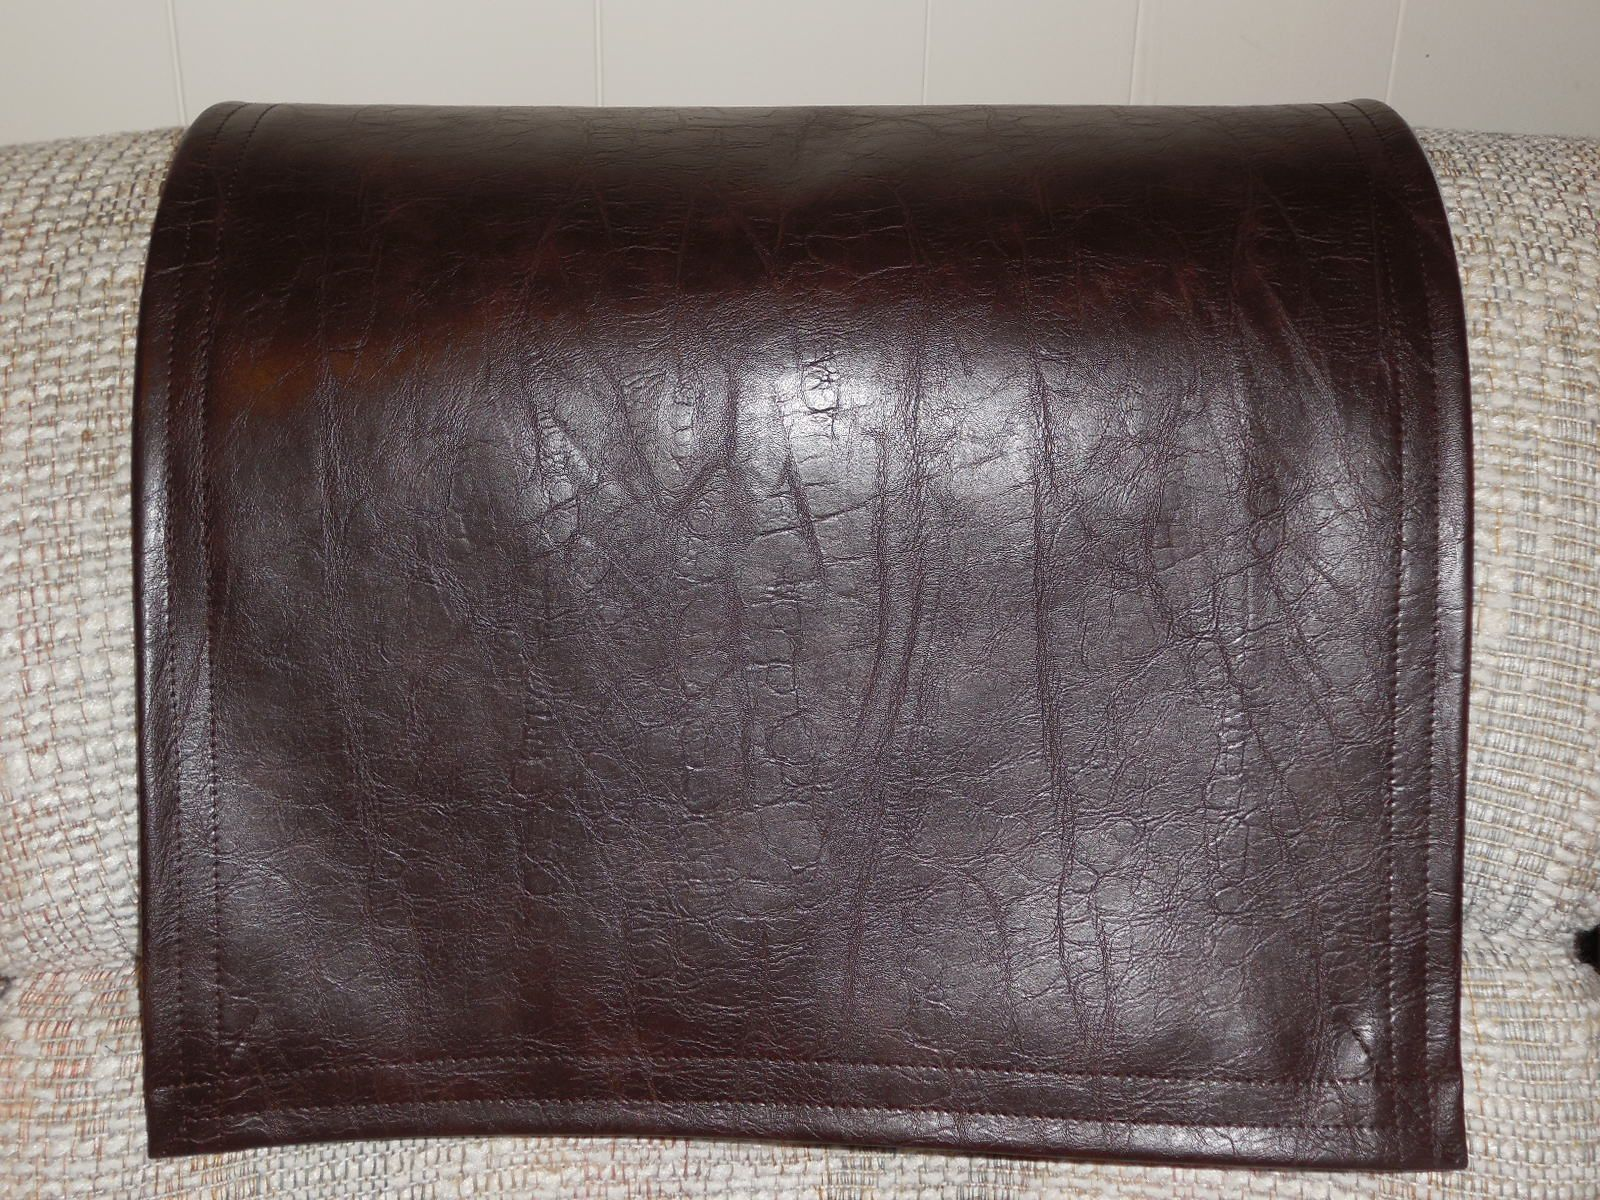 Will Recliner Headrest Cover In Chocolate Brown Fit Your Decor This Furniture Cover Is Vinyl Upholstery With Dist Furniture Protectors Vinyl Recliner Recliner